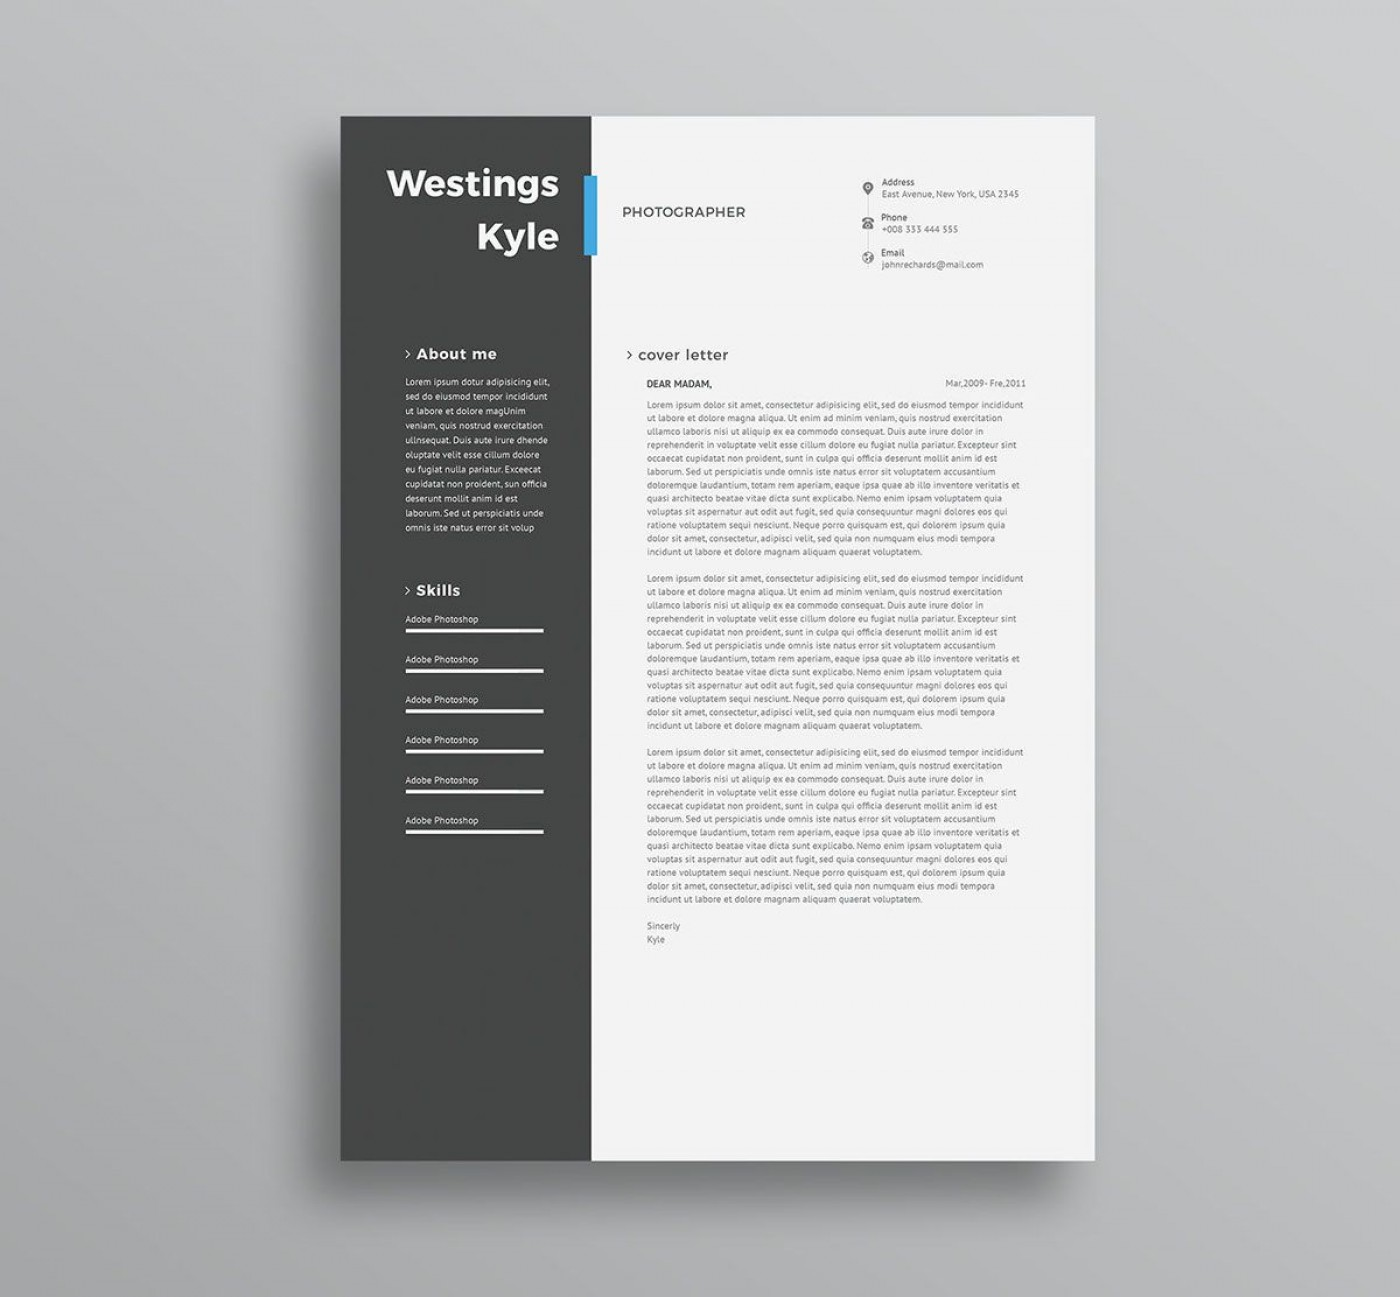 004 Amazing Professional Resume Template 2018 Free Download Photo 1400